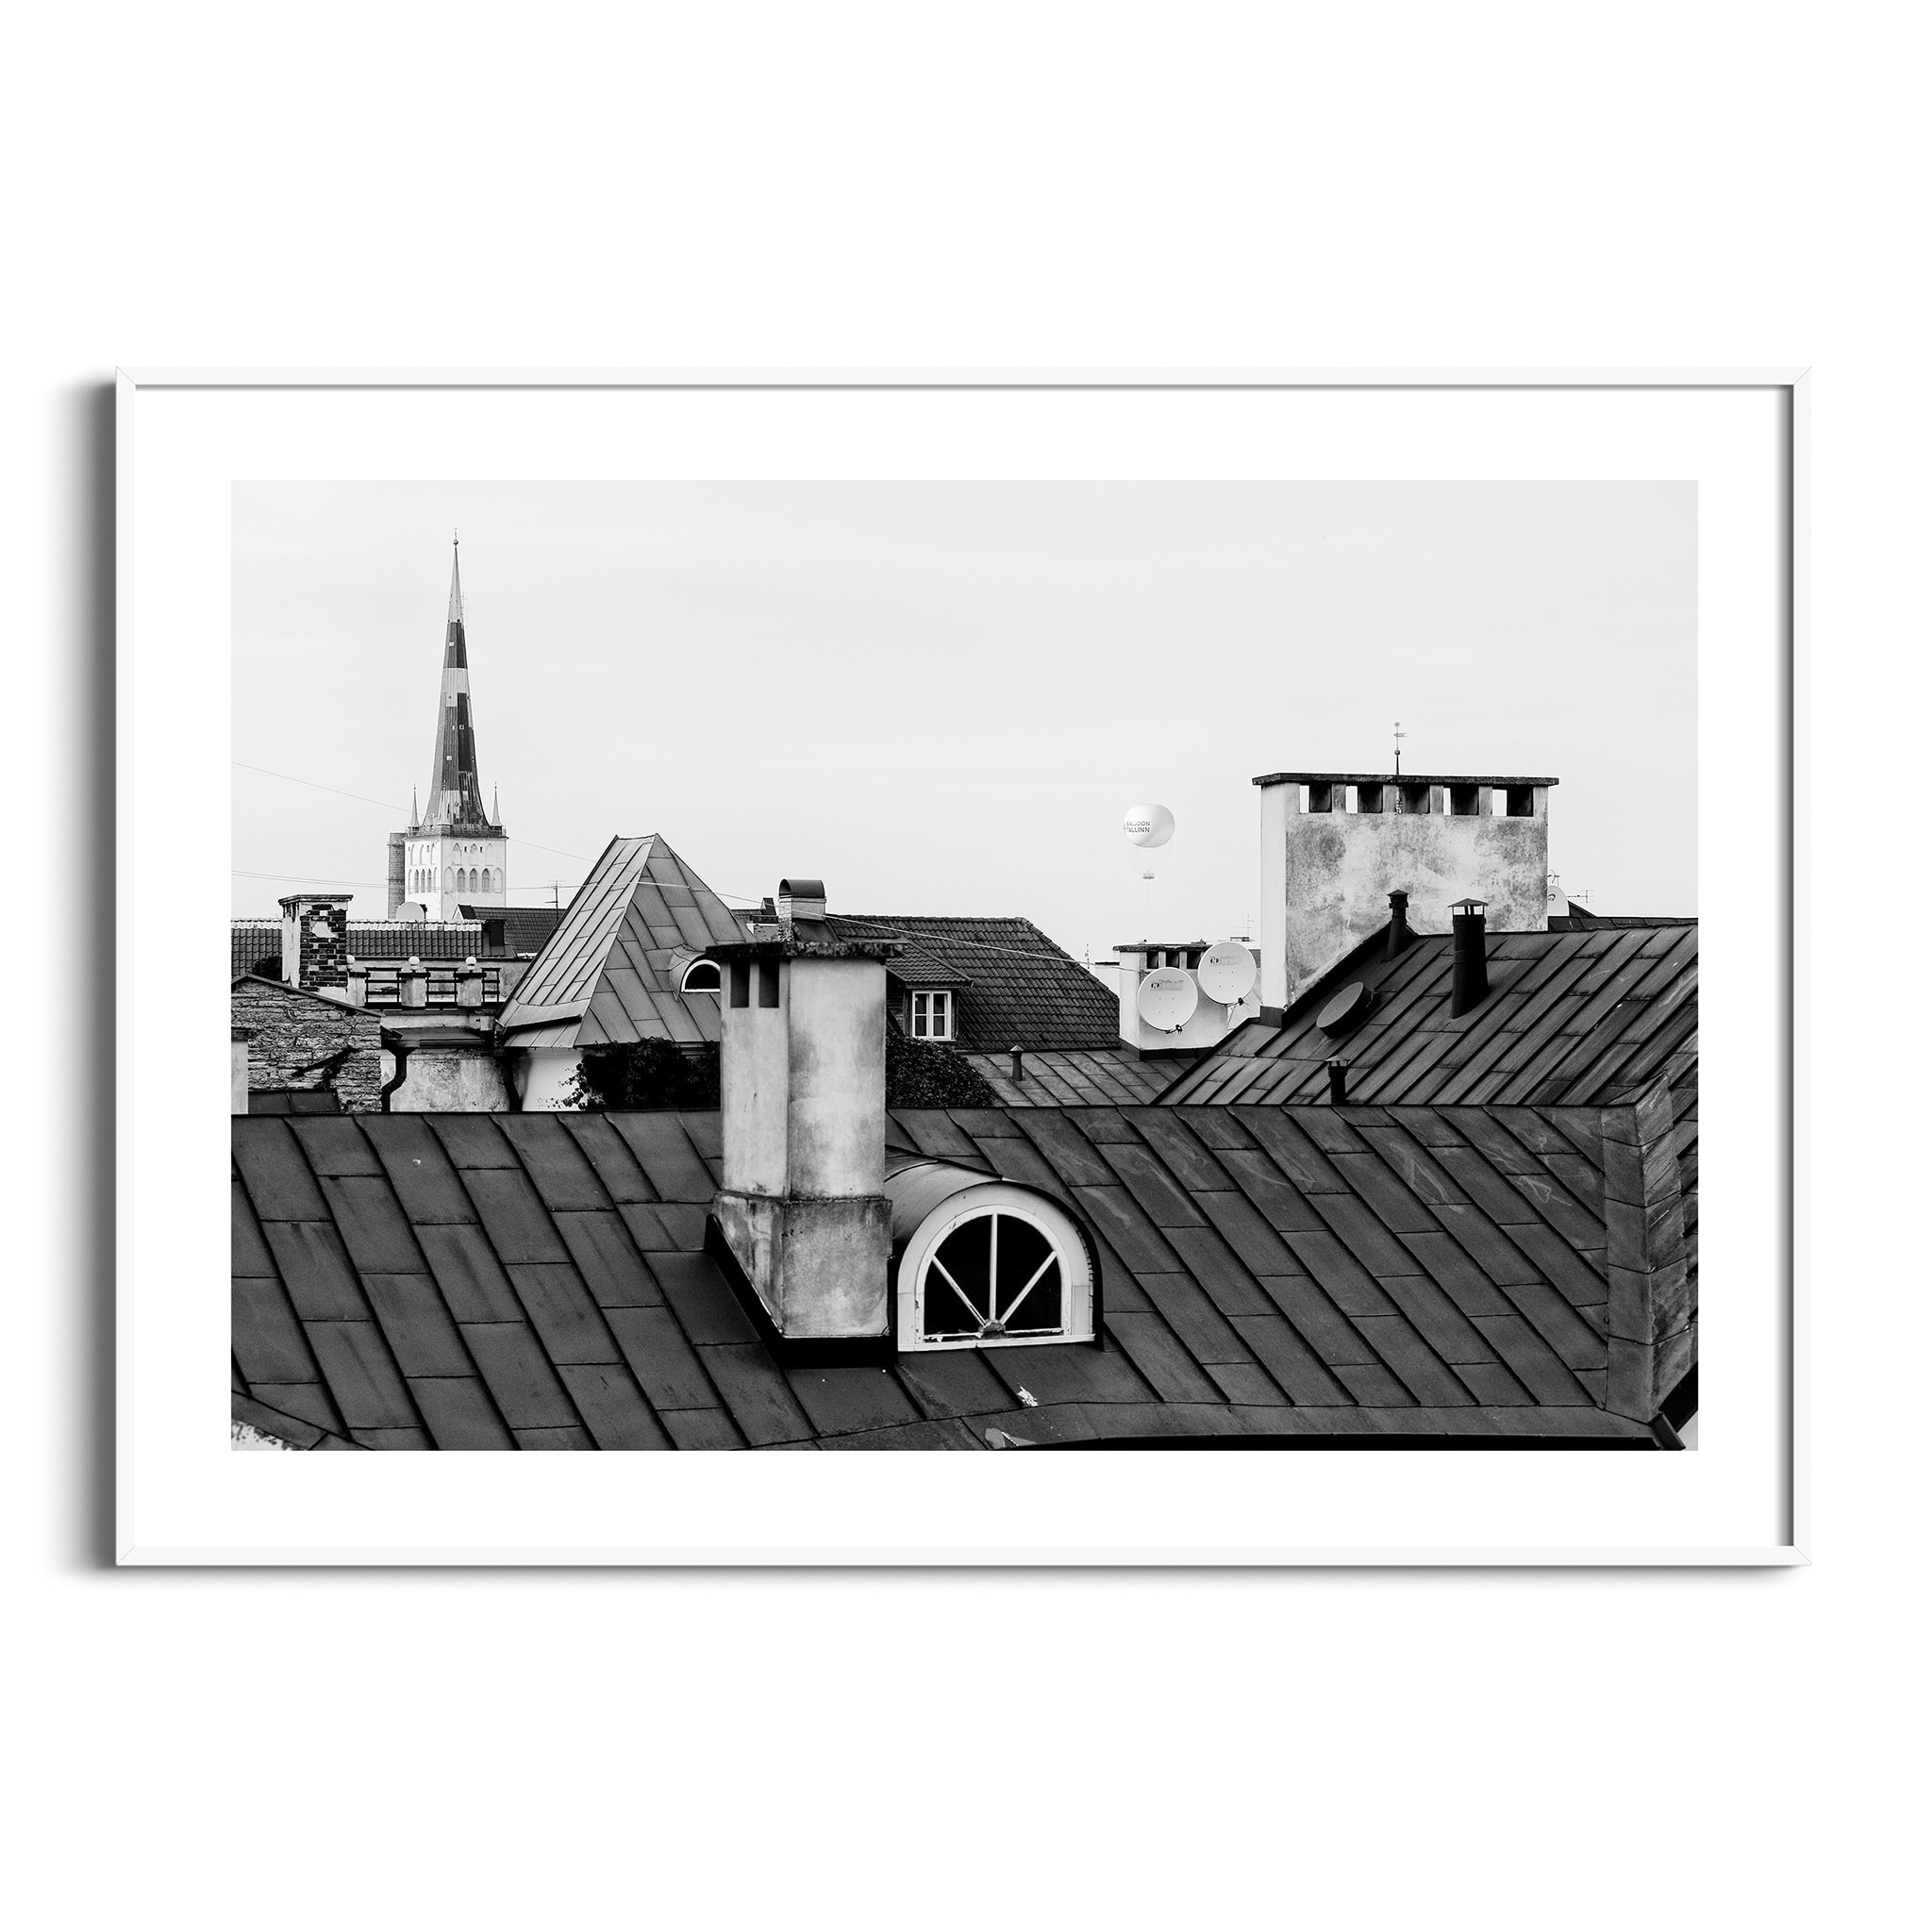 Tallinn Roofs in white frame with border